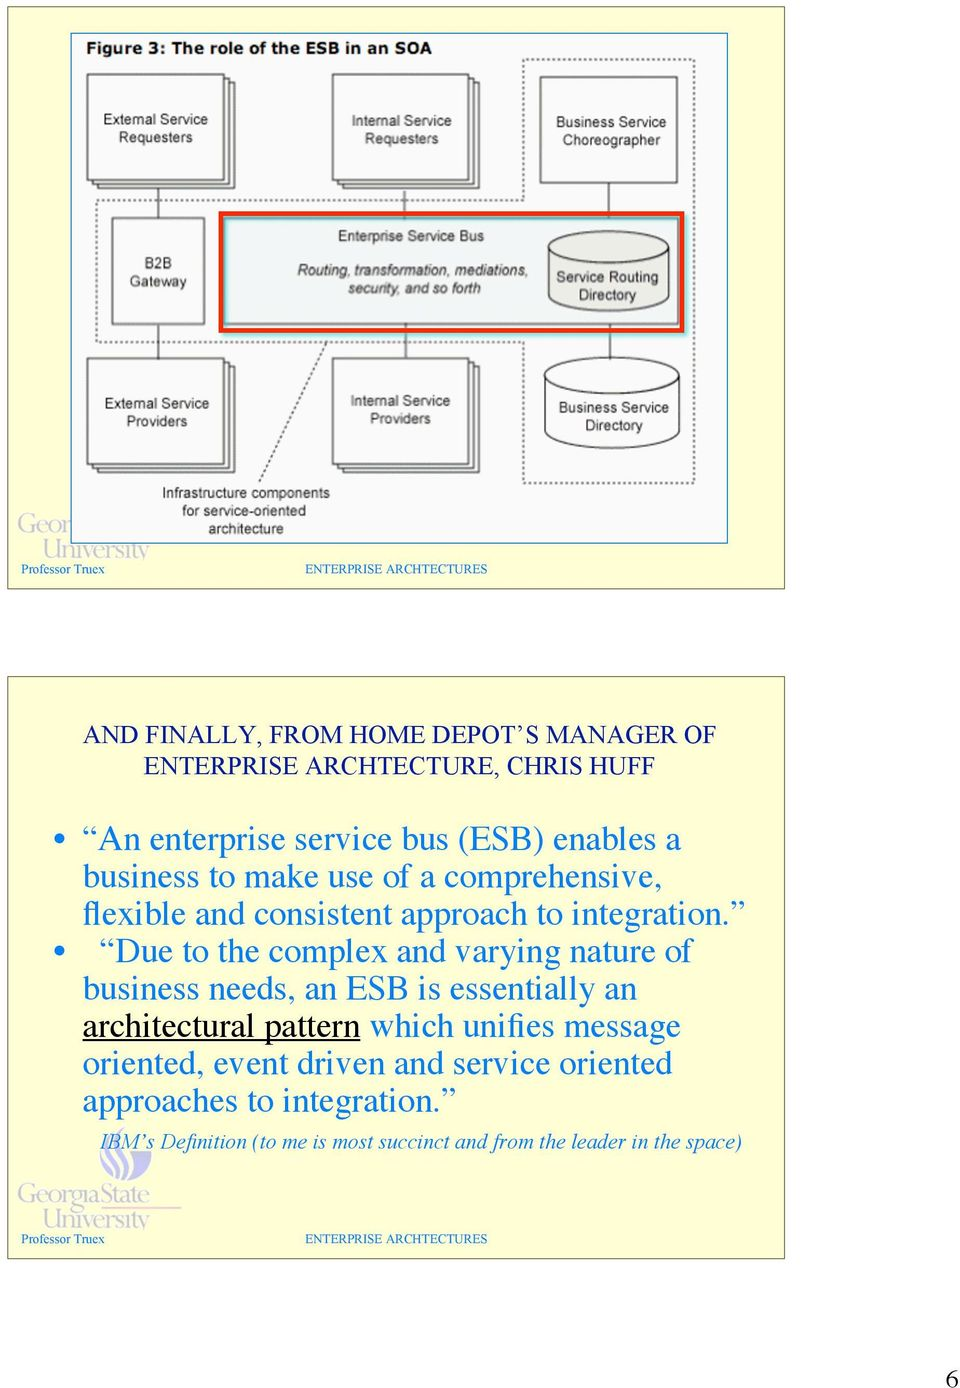 Due to the complex and varying nature of business needs, an ESB is essentially an architectural pattern which unifies